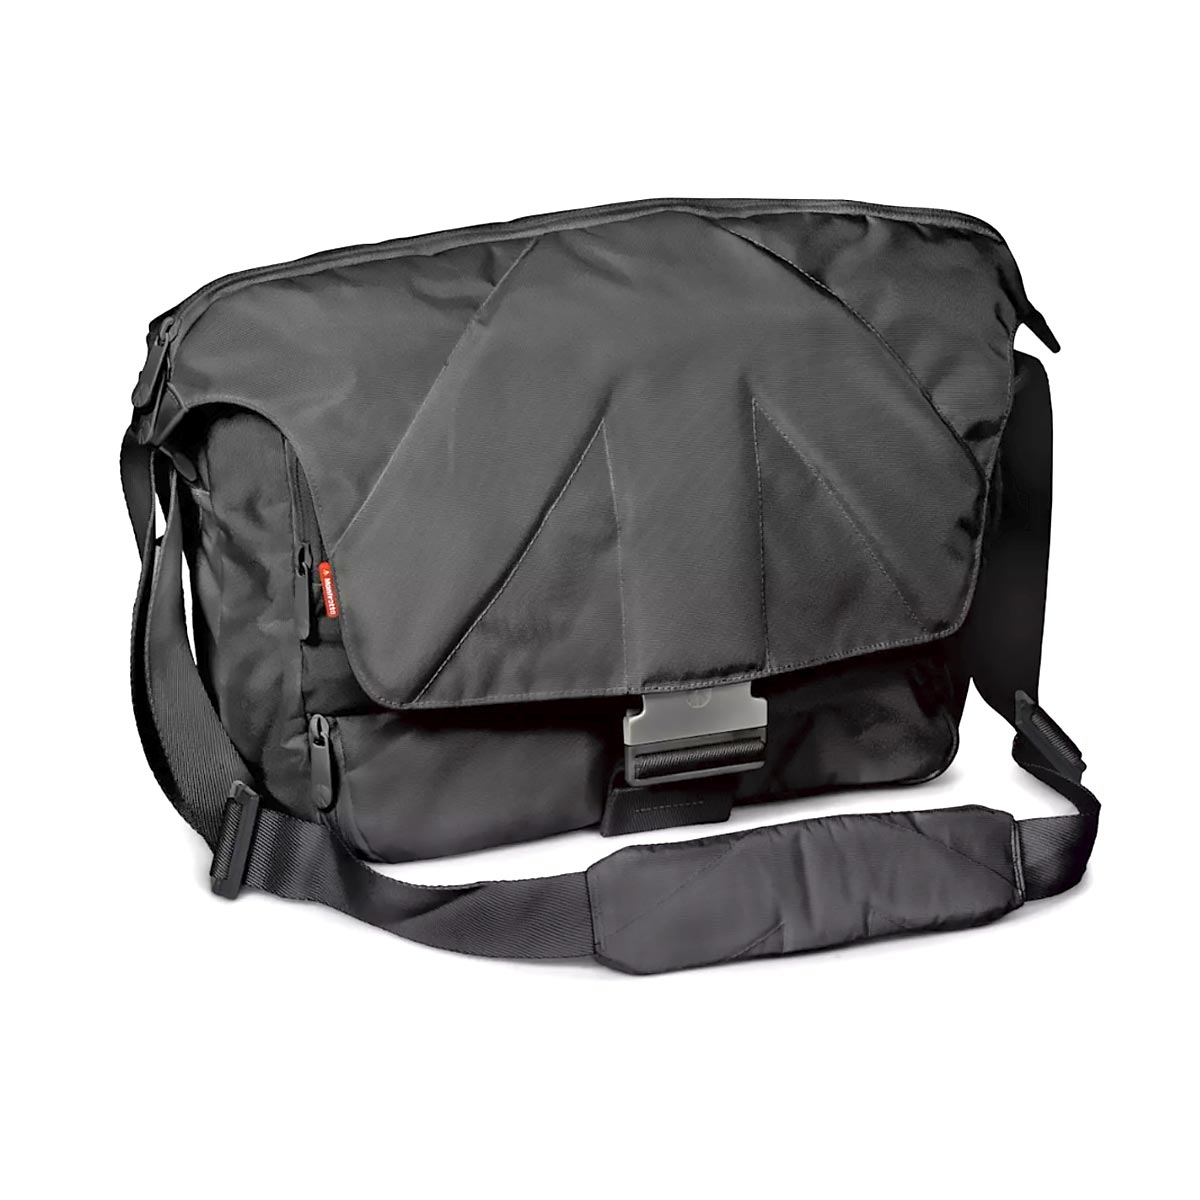 Mochila Manfrotto Unica V Messenger